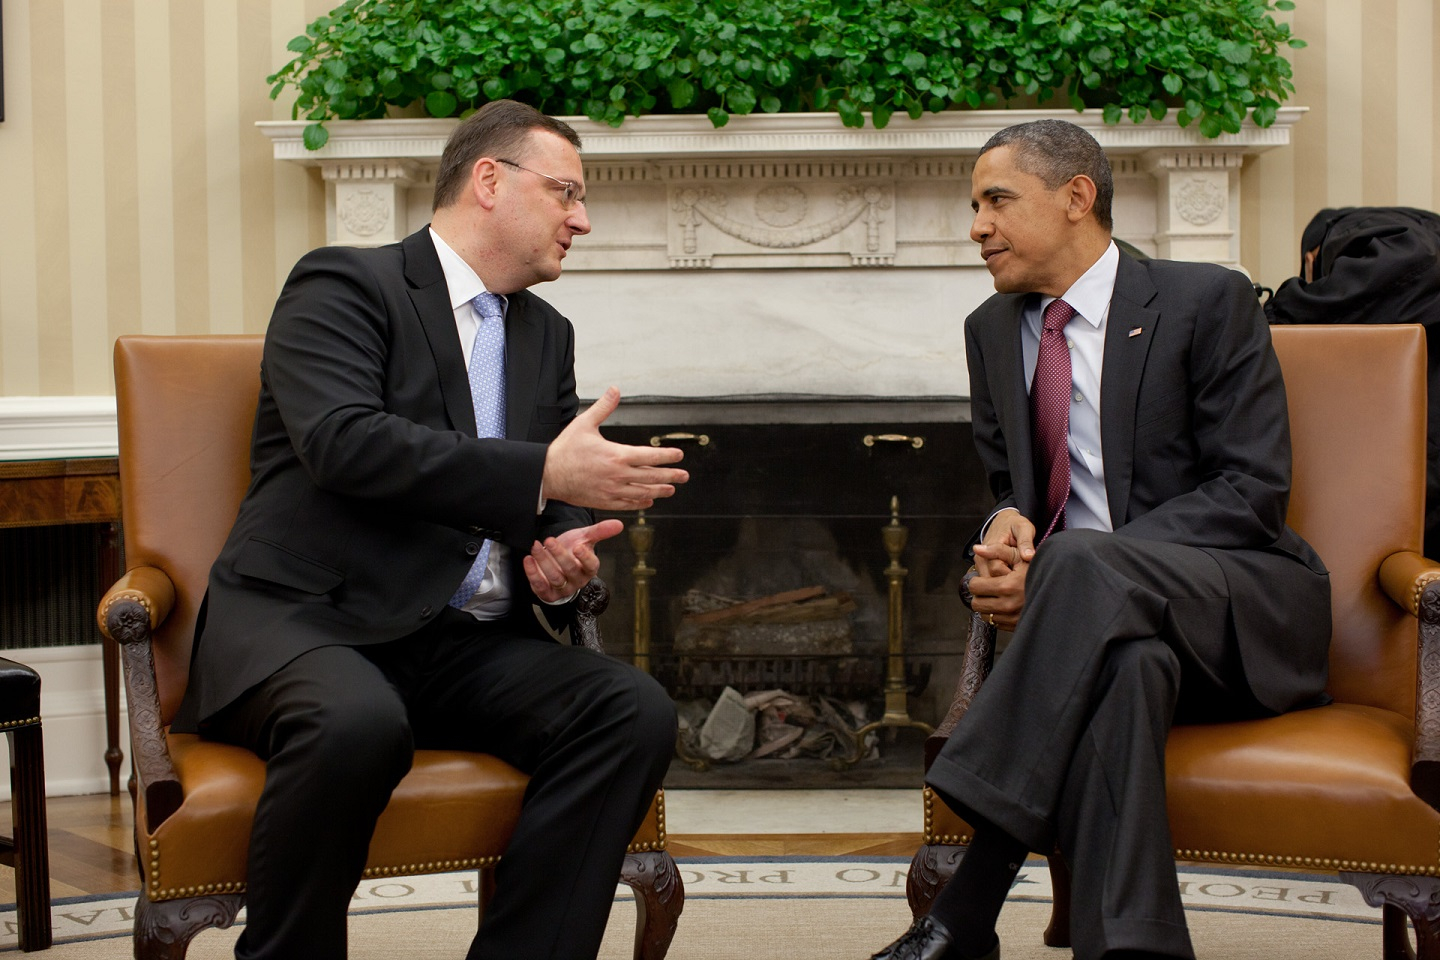 President Barack Obama holds a bilateral meeting with Prime Minister Petr Necas of the Czech Republic, in the Oval Office, Oct. 27, 2011. (Official White House Photo by Pete Souza)